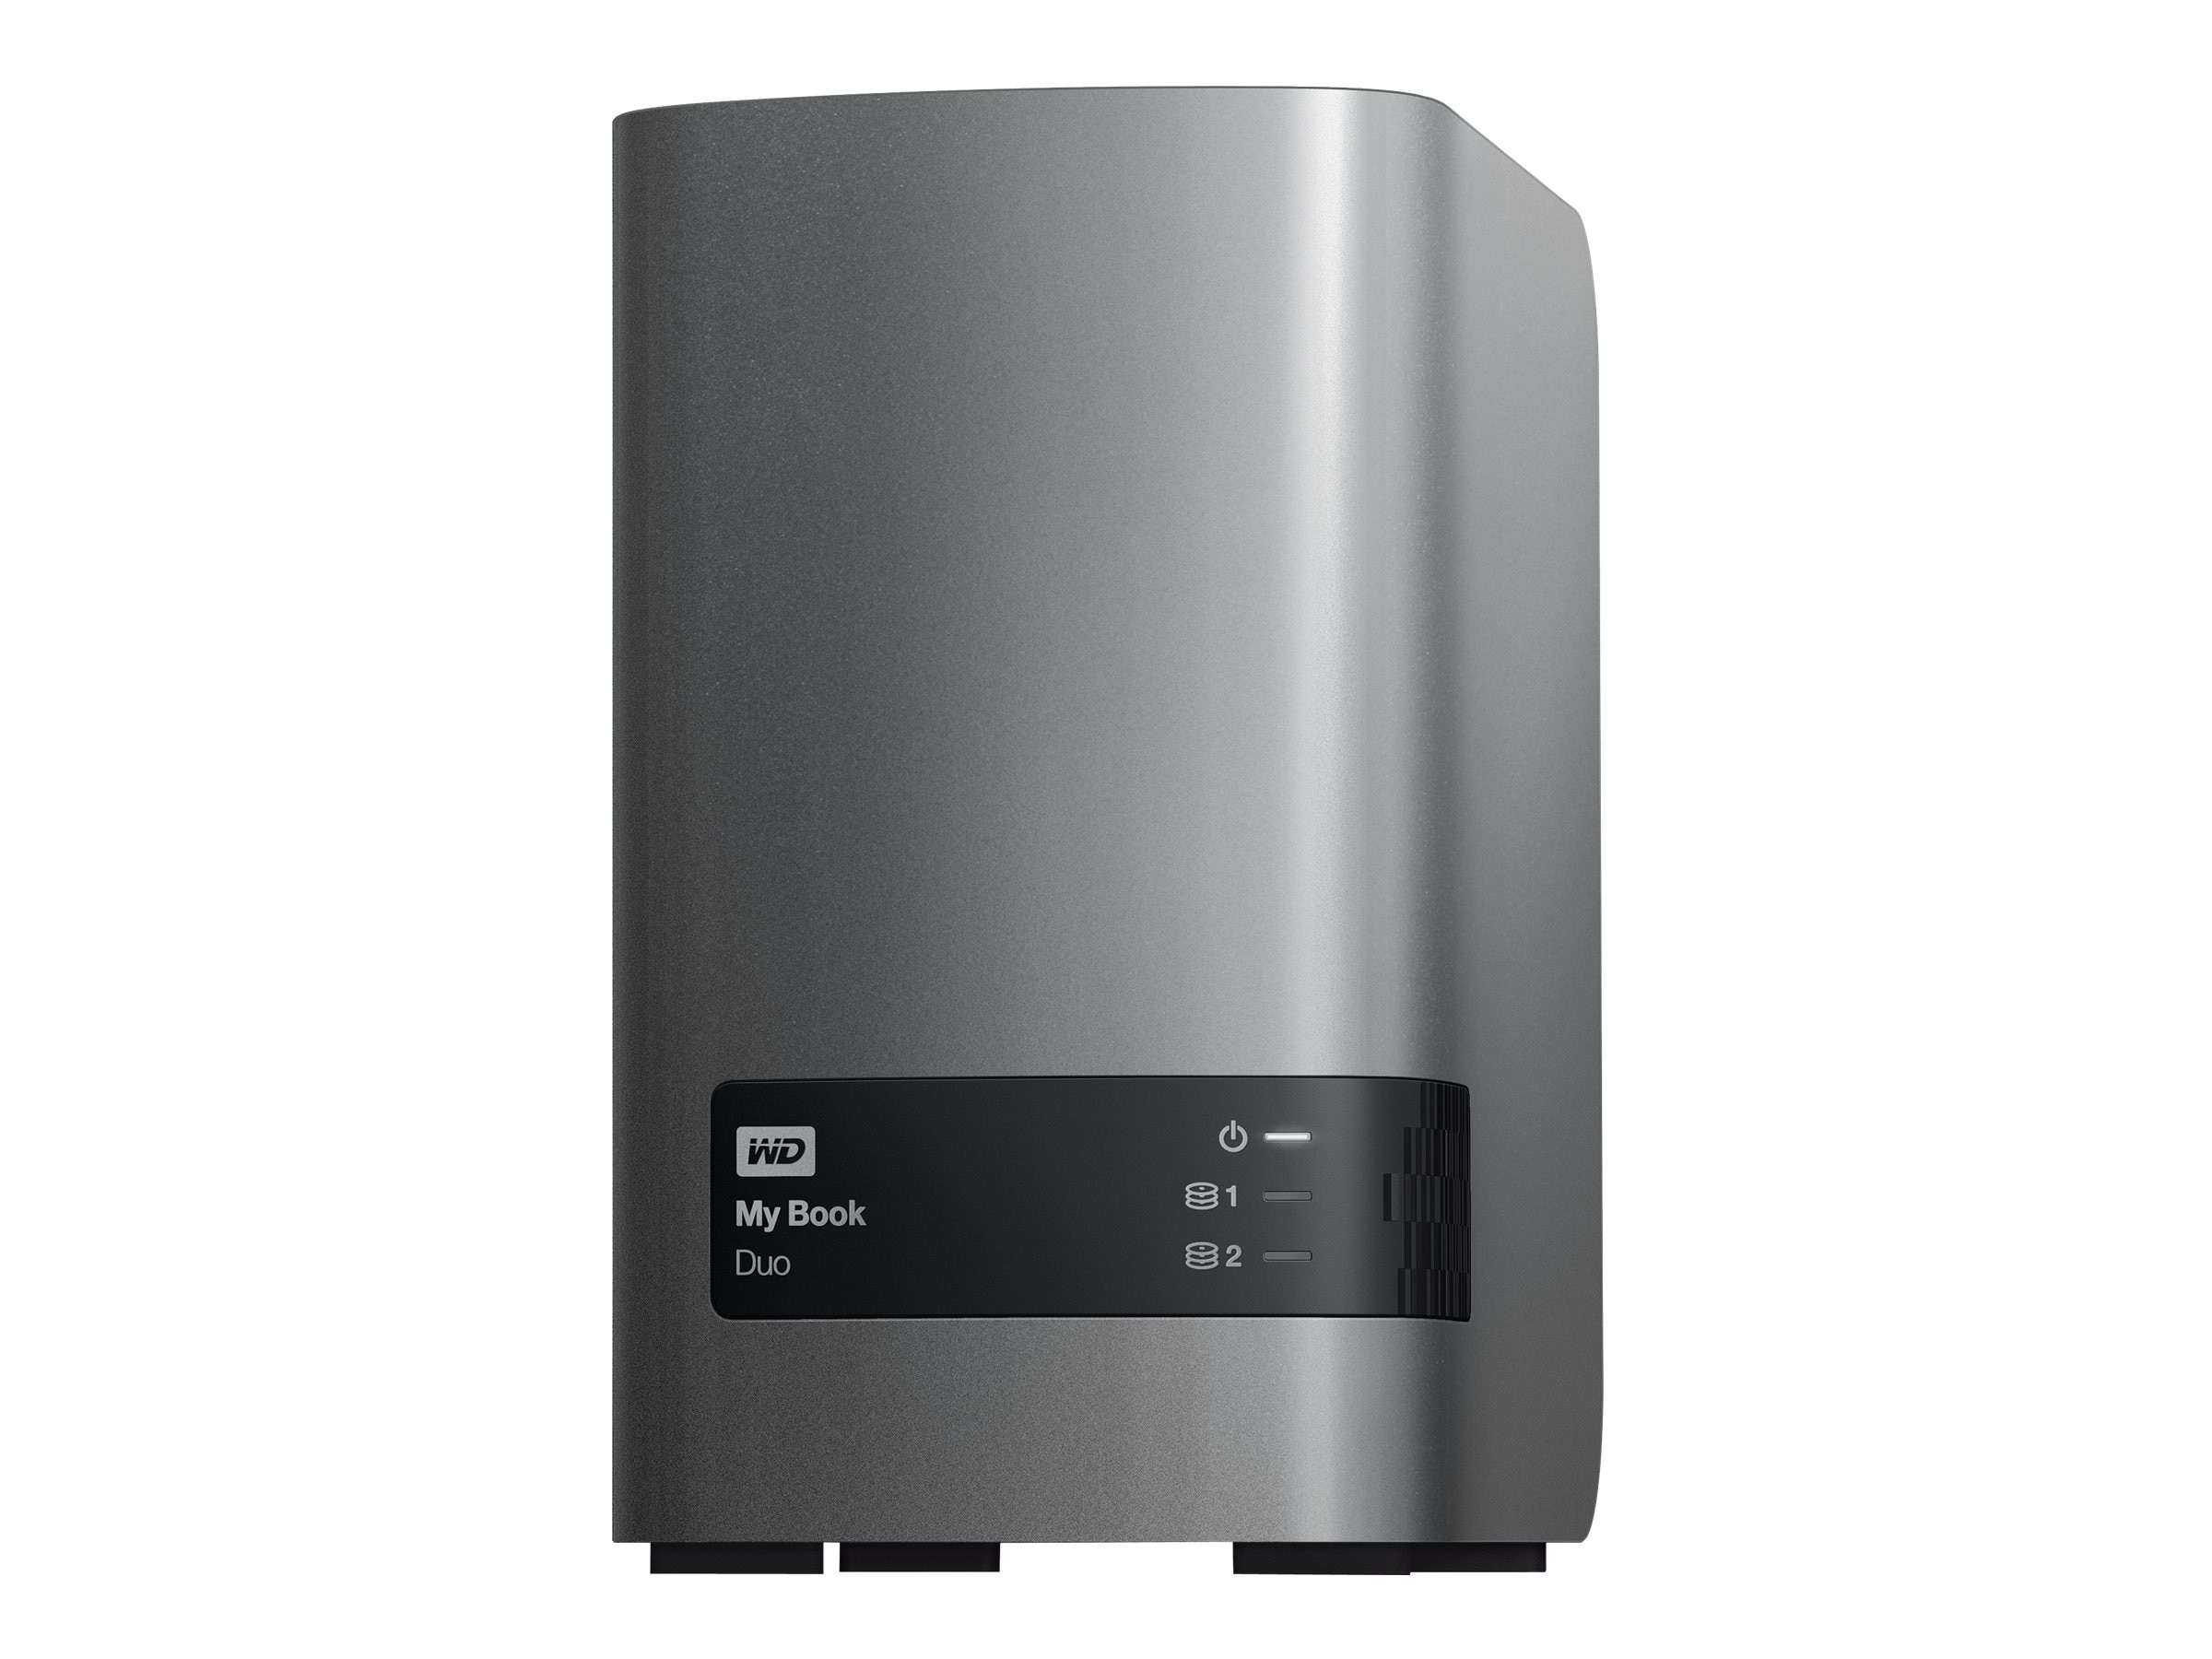 WD 6TB My Book Duo RAID Storage, WDBLWE0060JCH-NESN, 17380732, Hard Drives - External